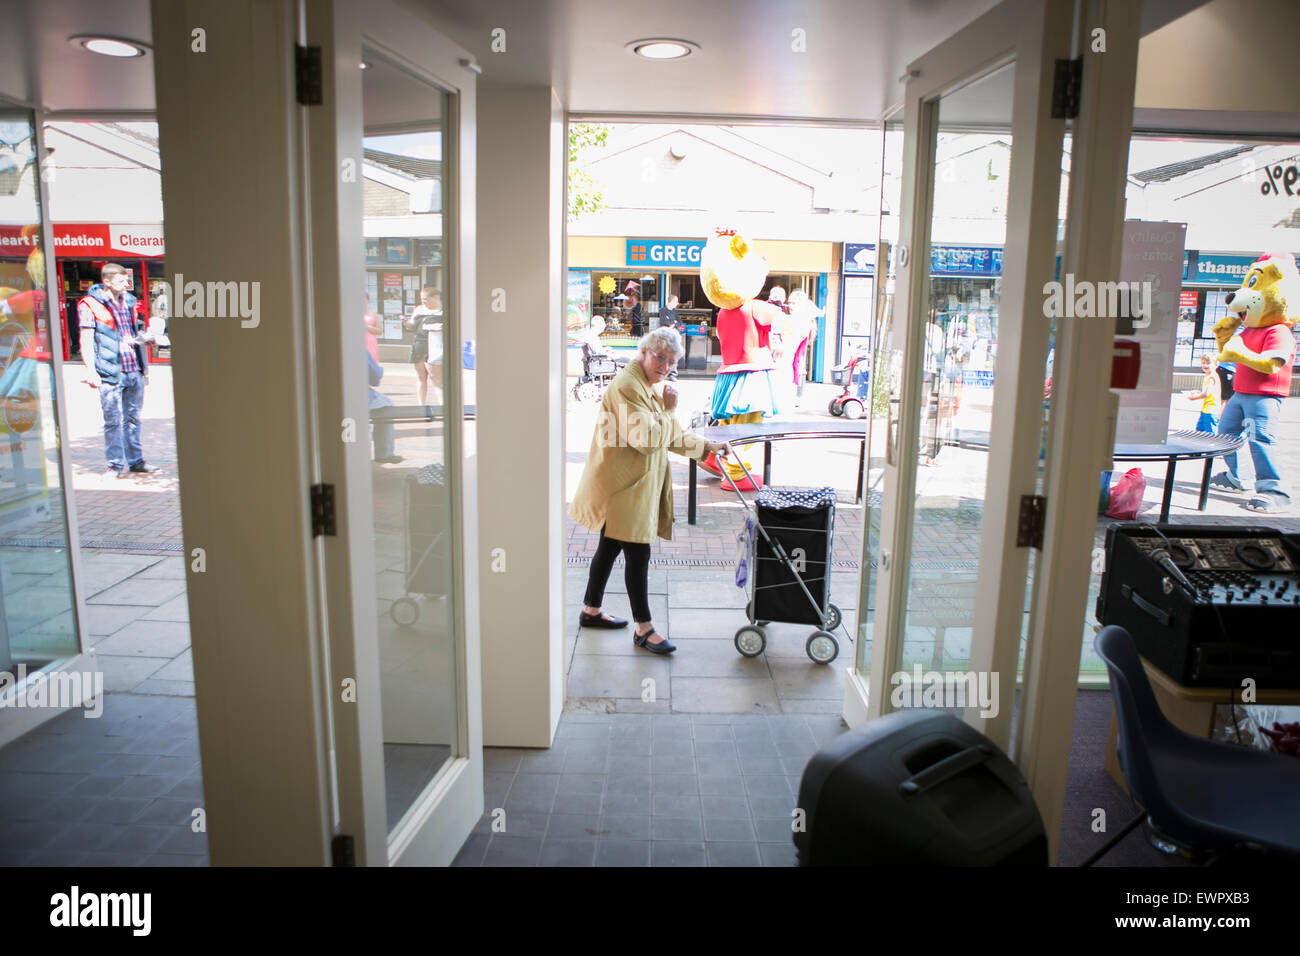 A woman with a shopping trolley walks past an open shop door - Stock Image